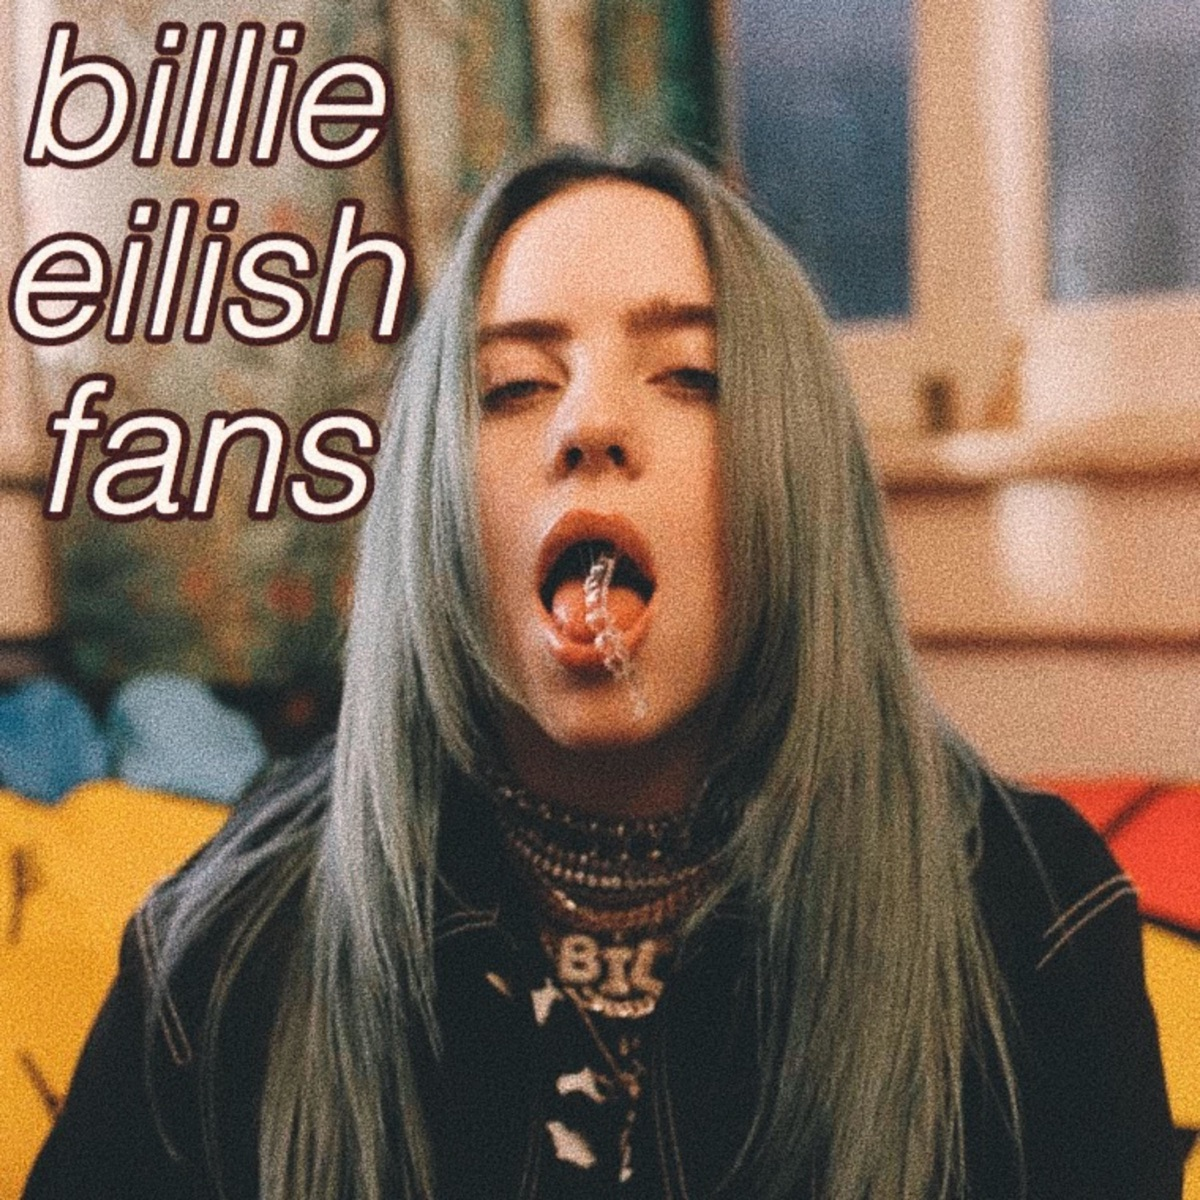 podcast 123283921 billie eilish fans CD cover